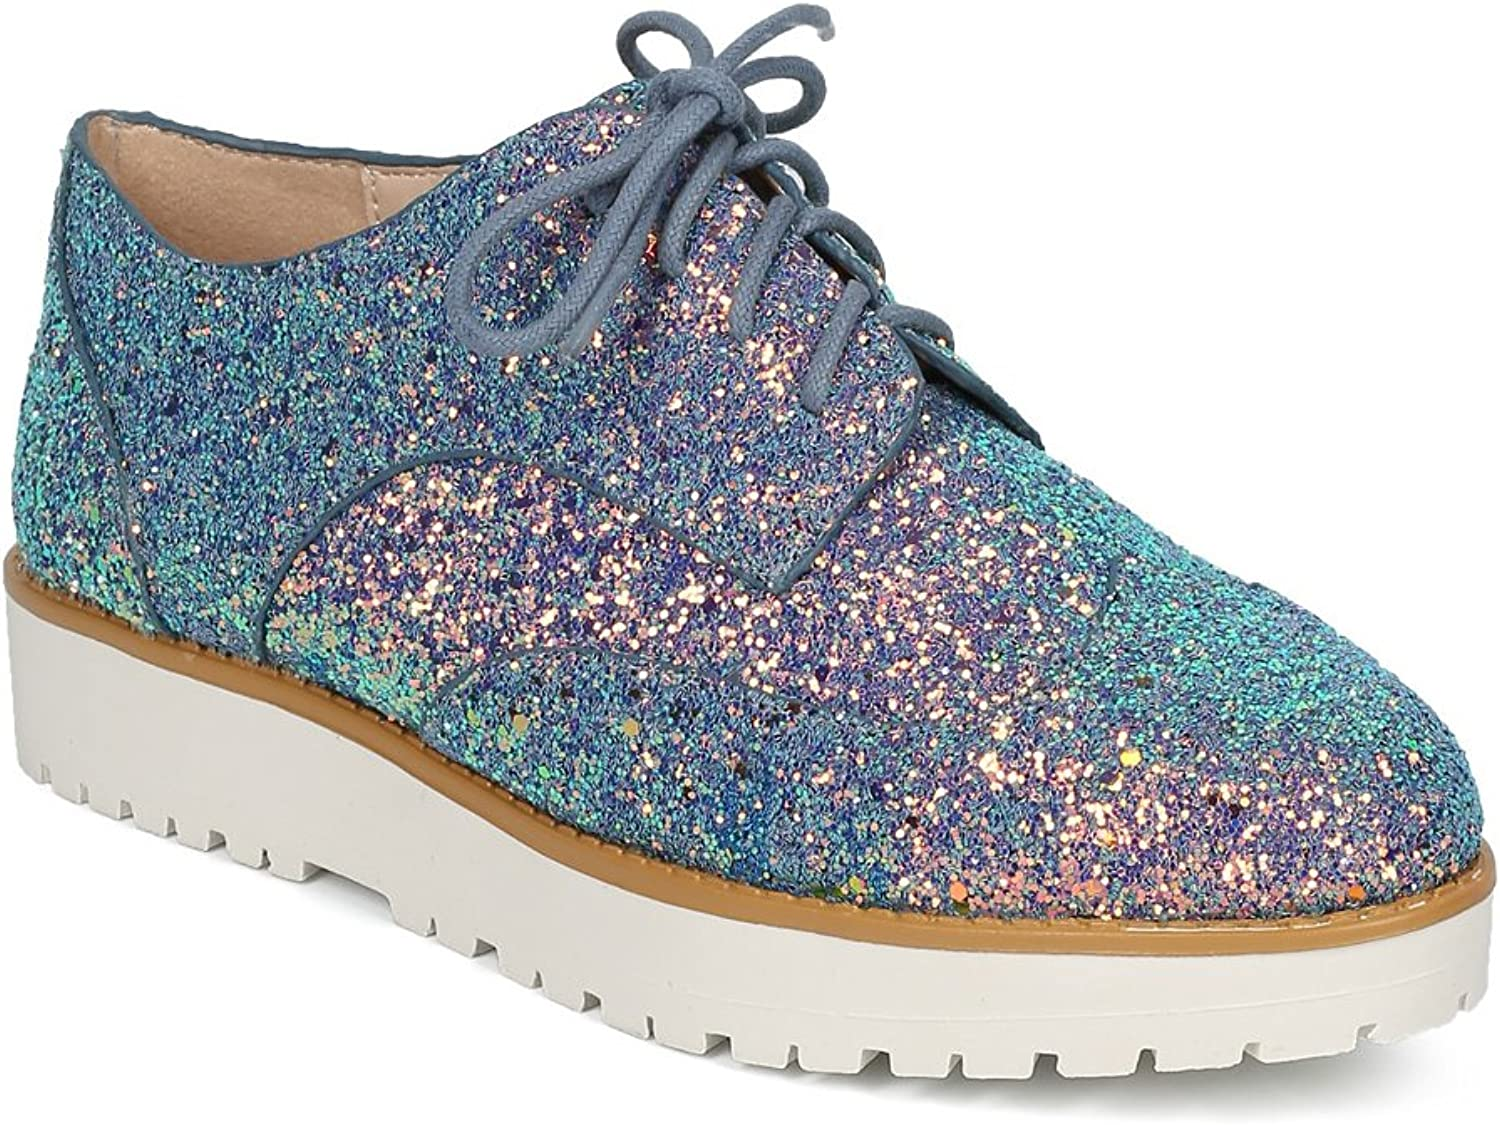 Alrisco Glitter Encrusted Lace Up Flatform Spectator Loafer HC97